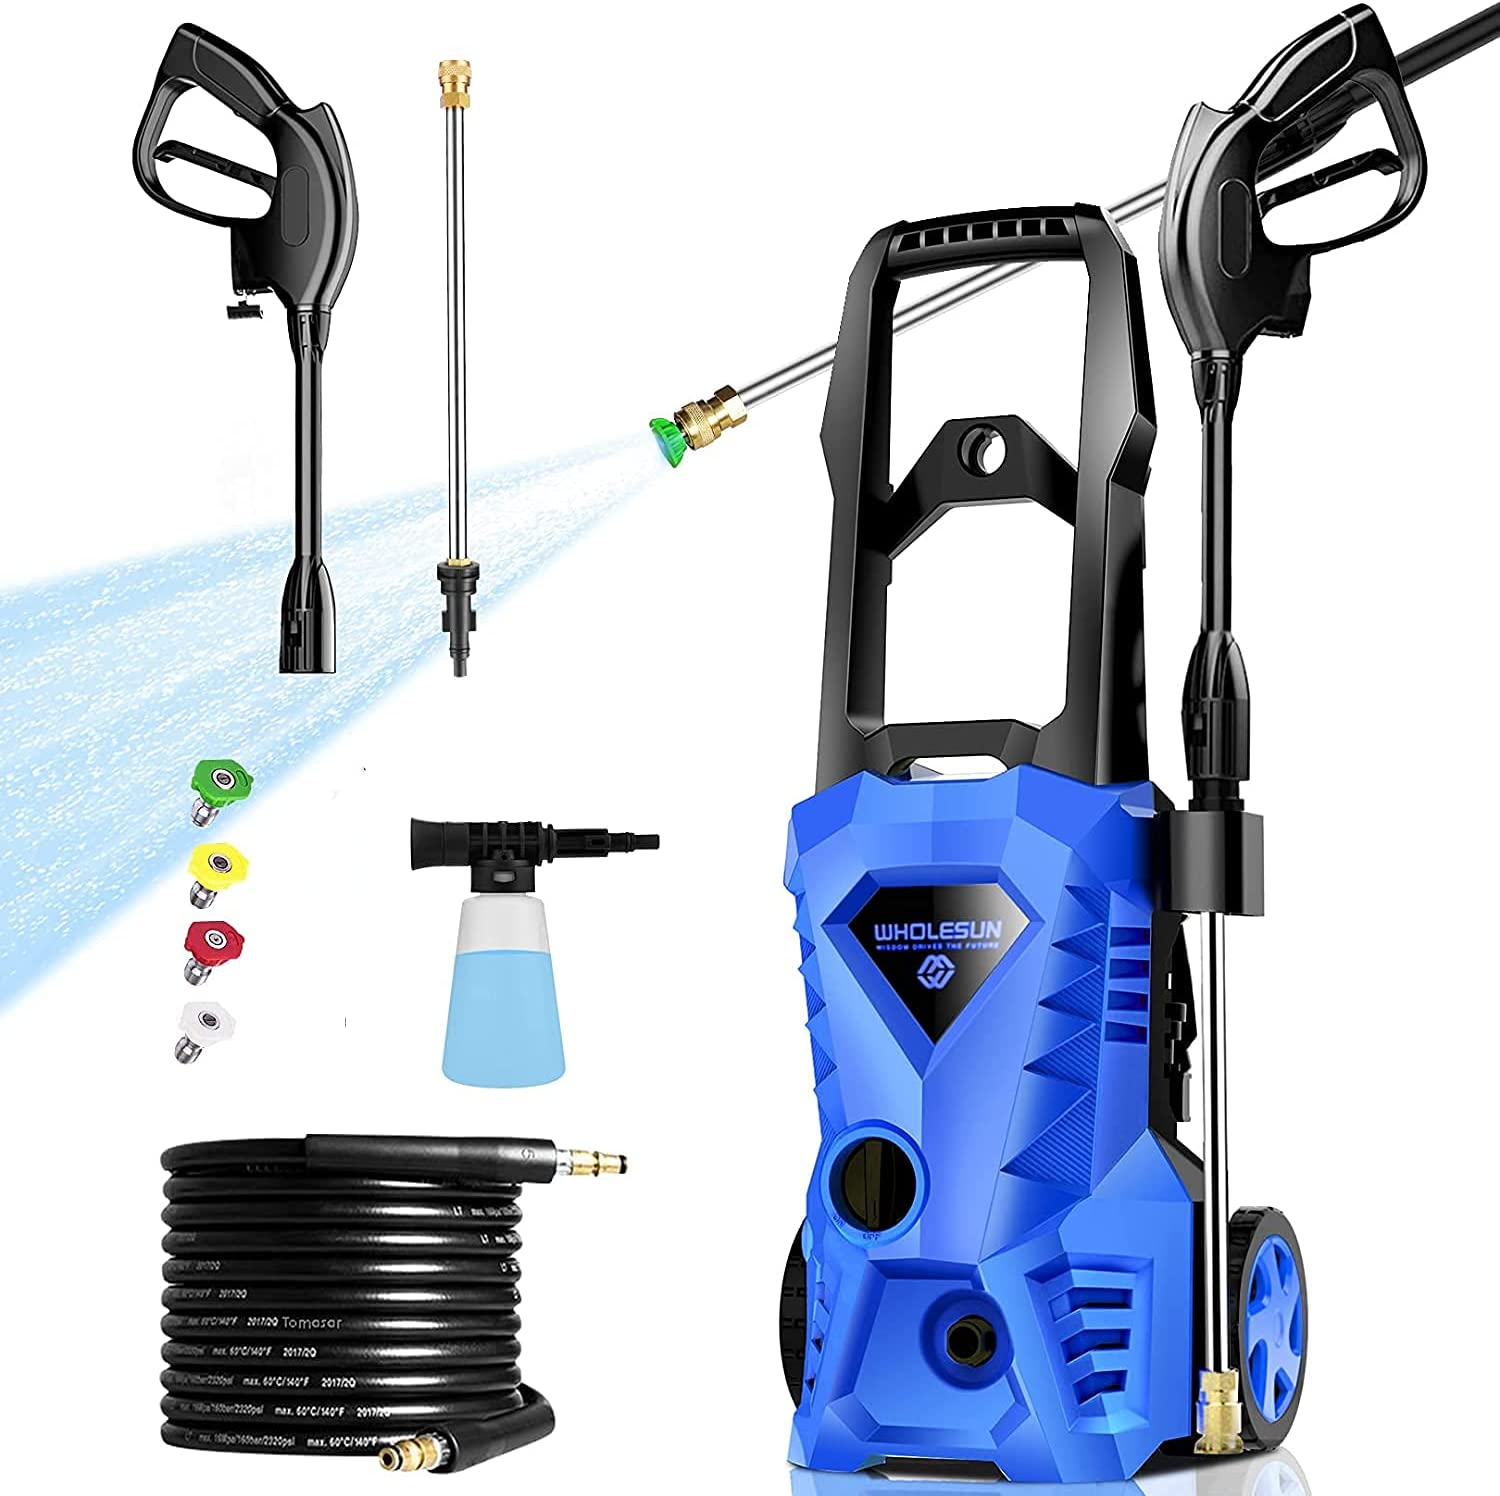 Upgraded WHOLESUN 3000 PSI Electric Cleaner 5 popular 1.8G Pressure Weekly update Washer